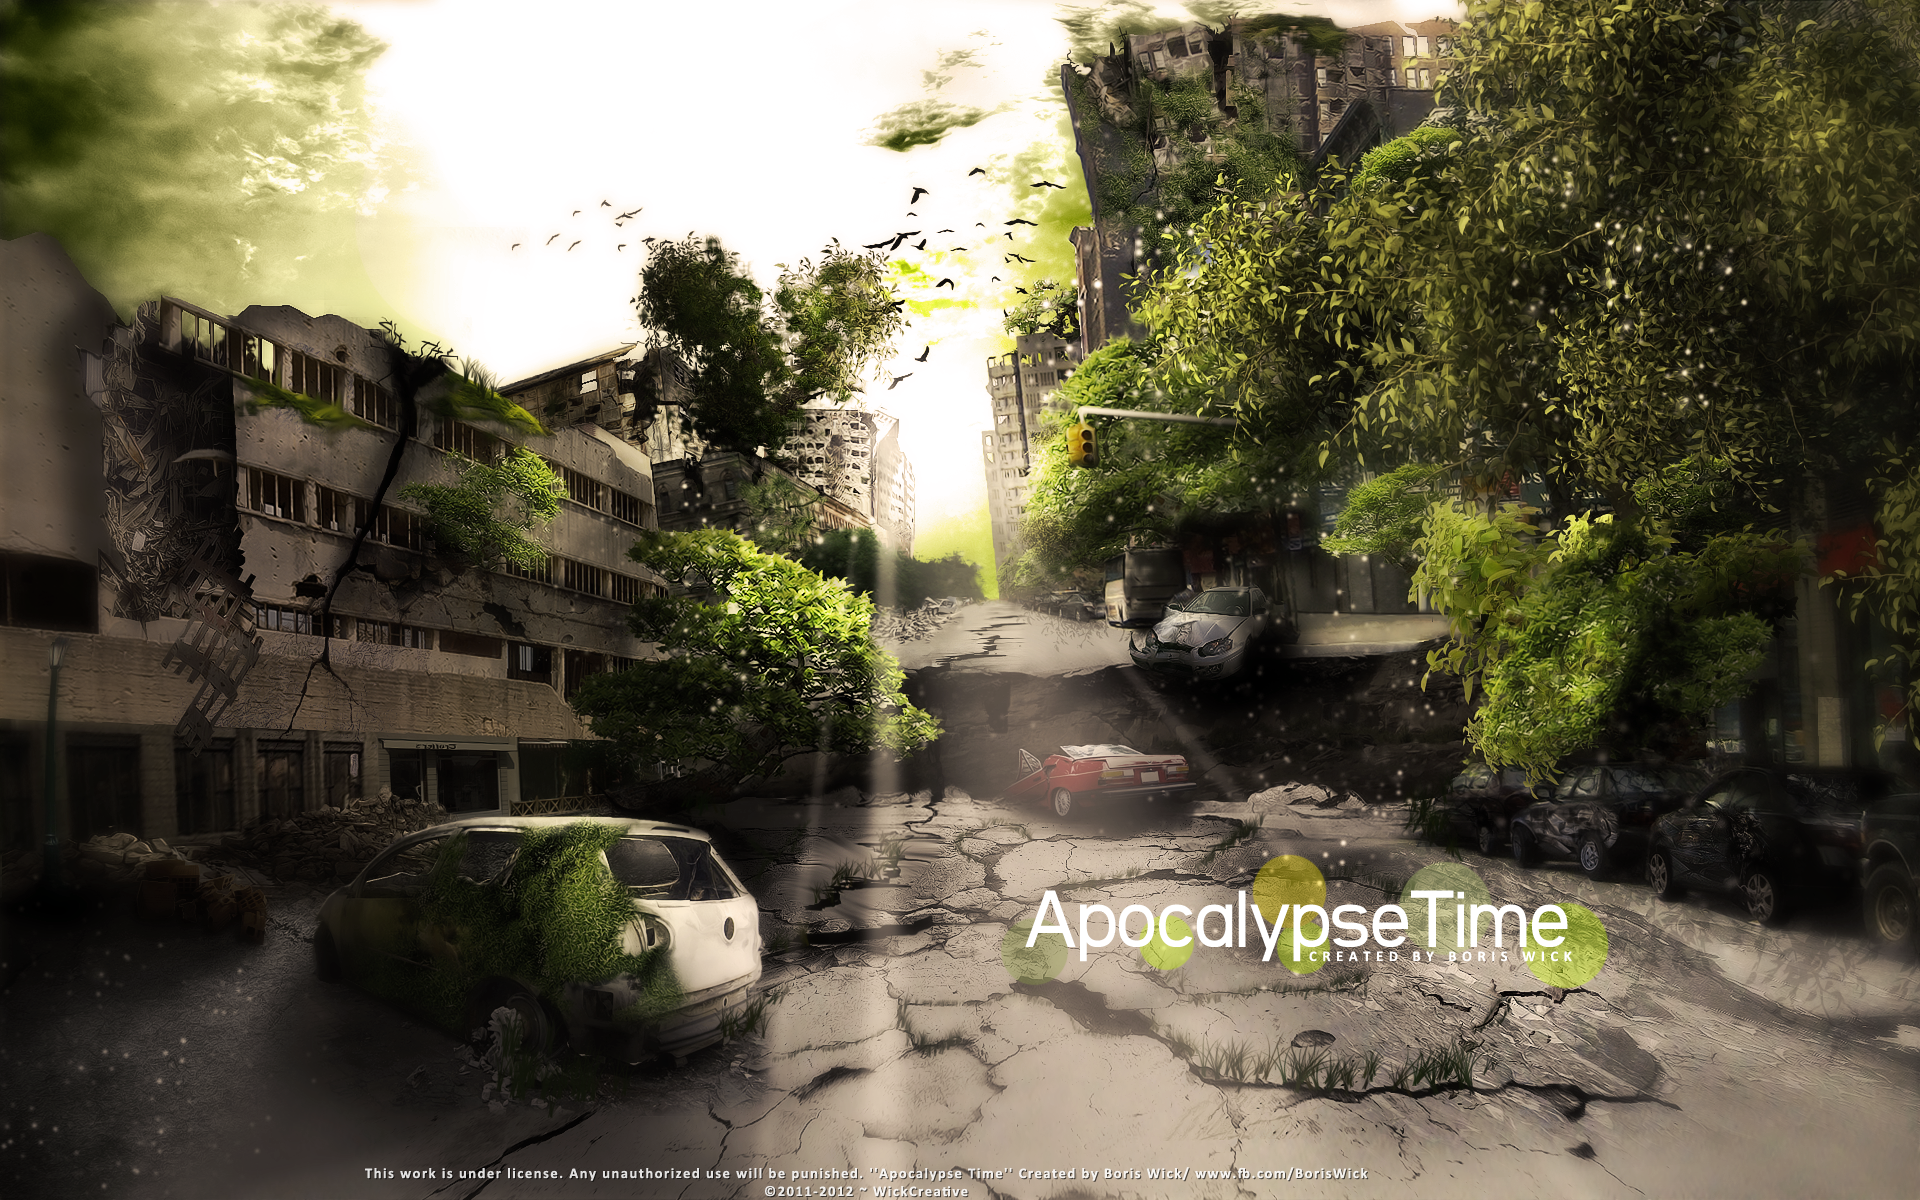 Apocalypse Time -SpeedArt by BorisWick